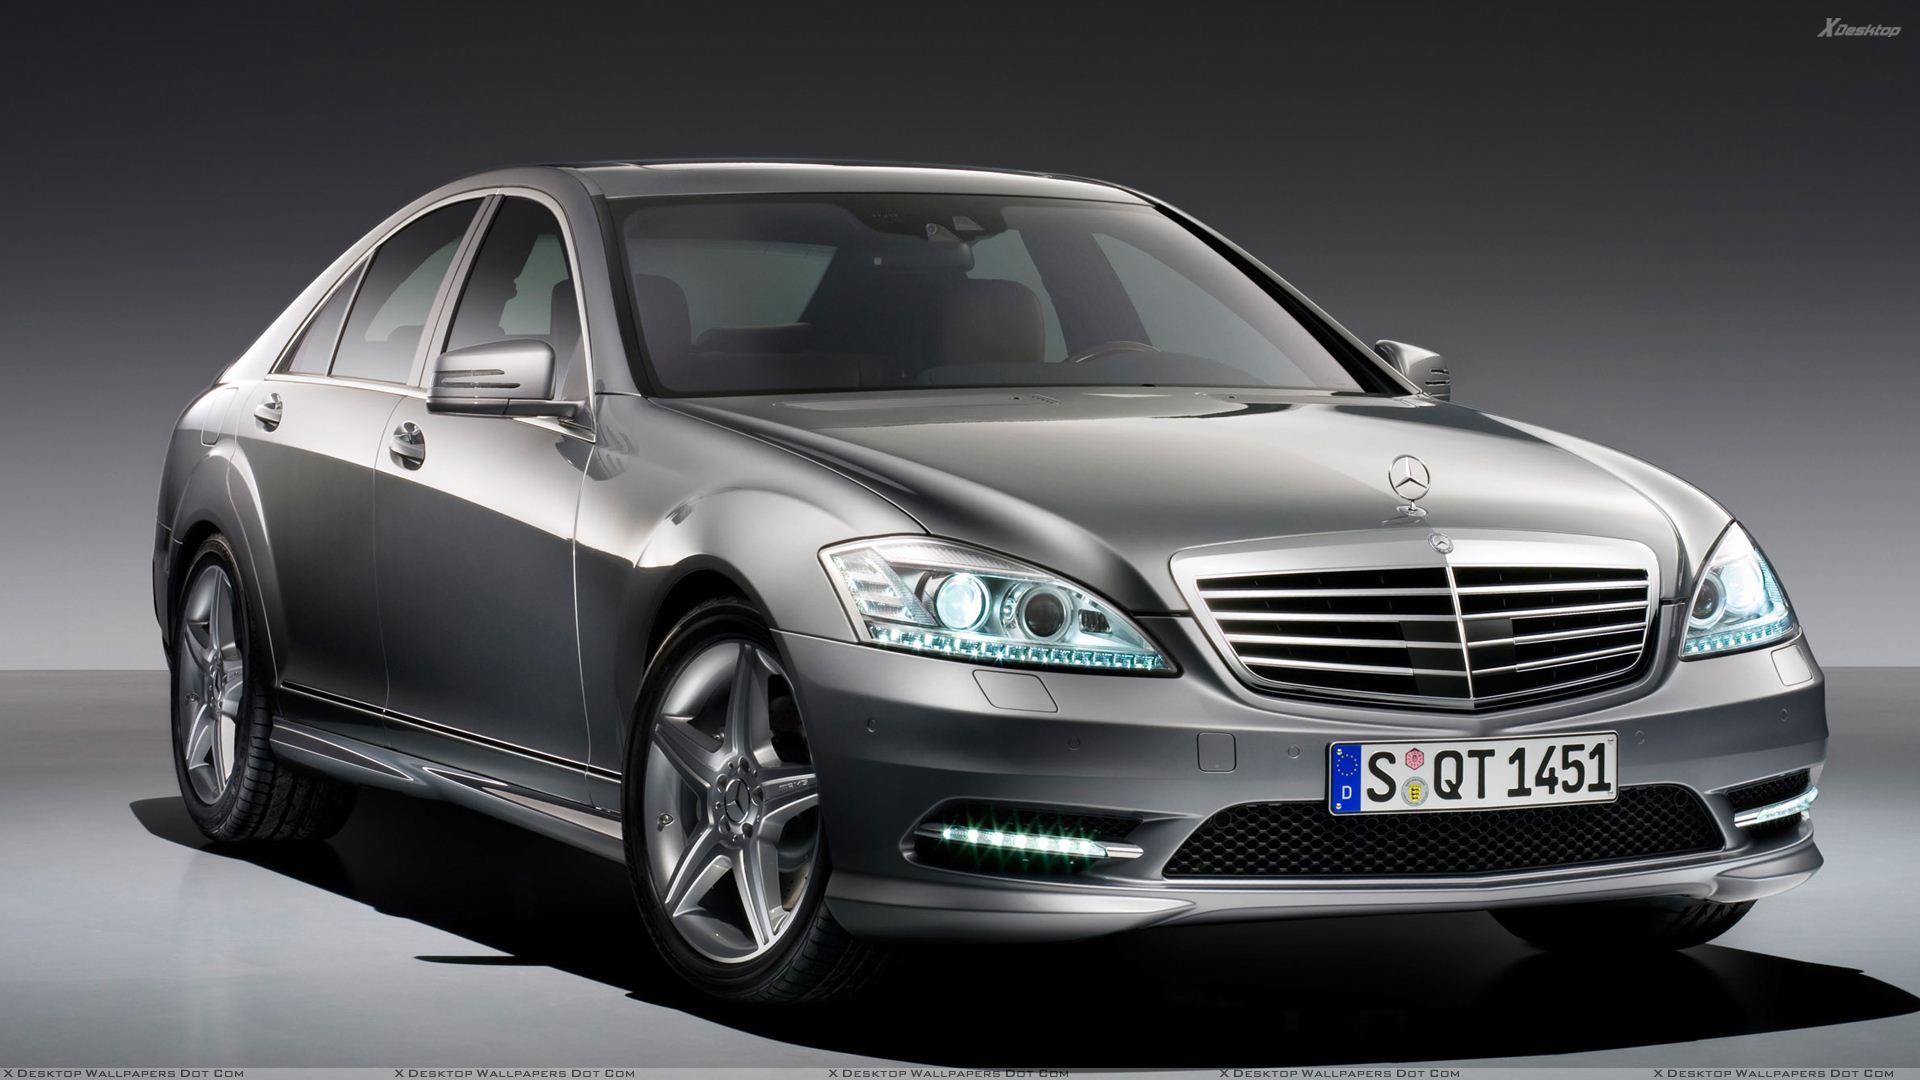 2009 mercedes benz s500 in grey front pose wallpaper for S 500 mercedes benz